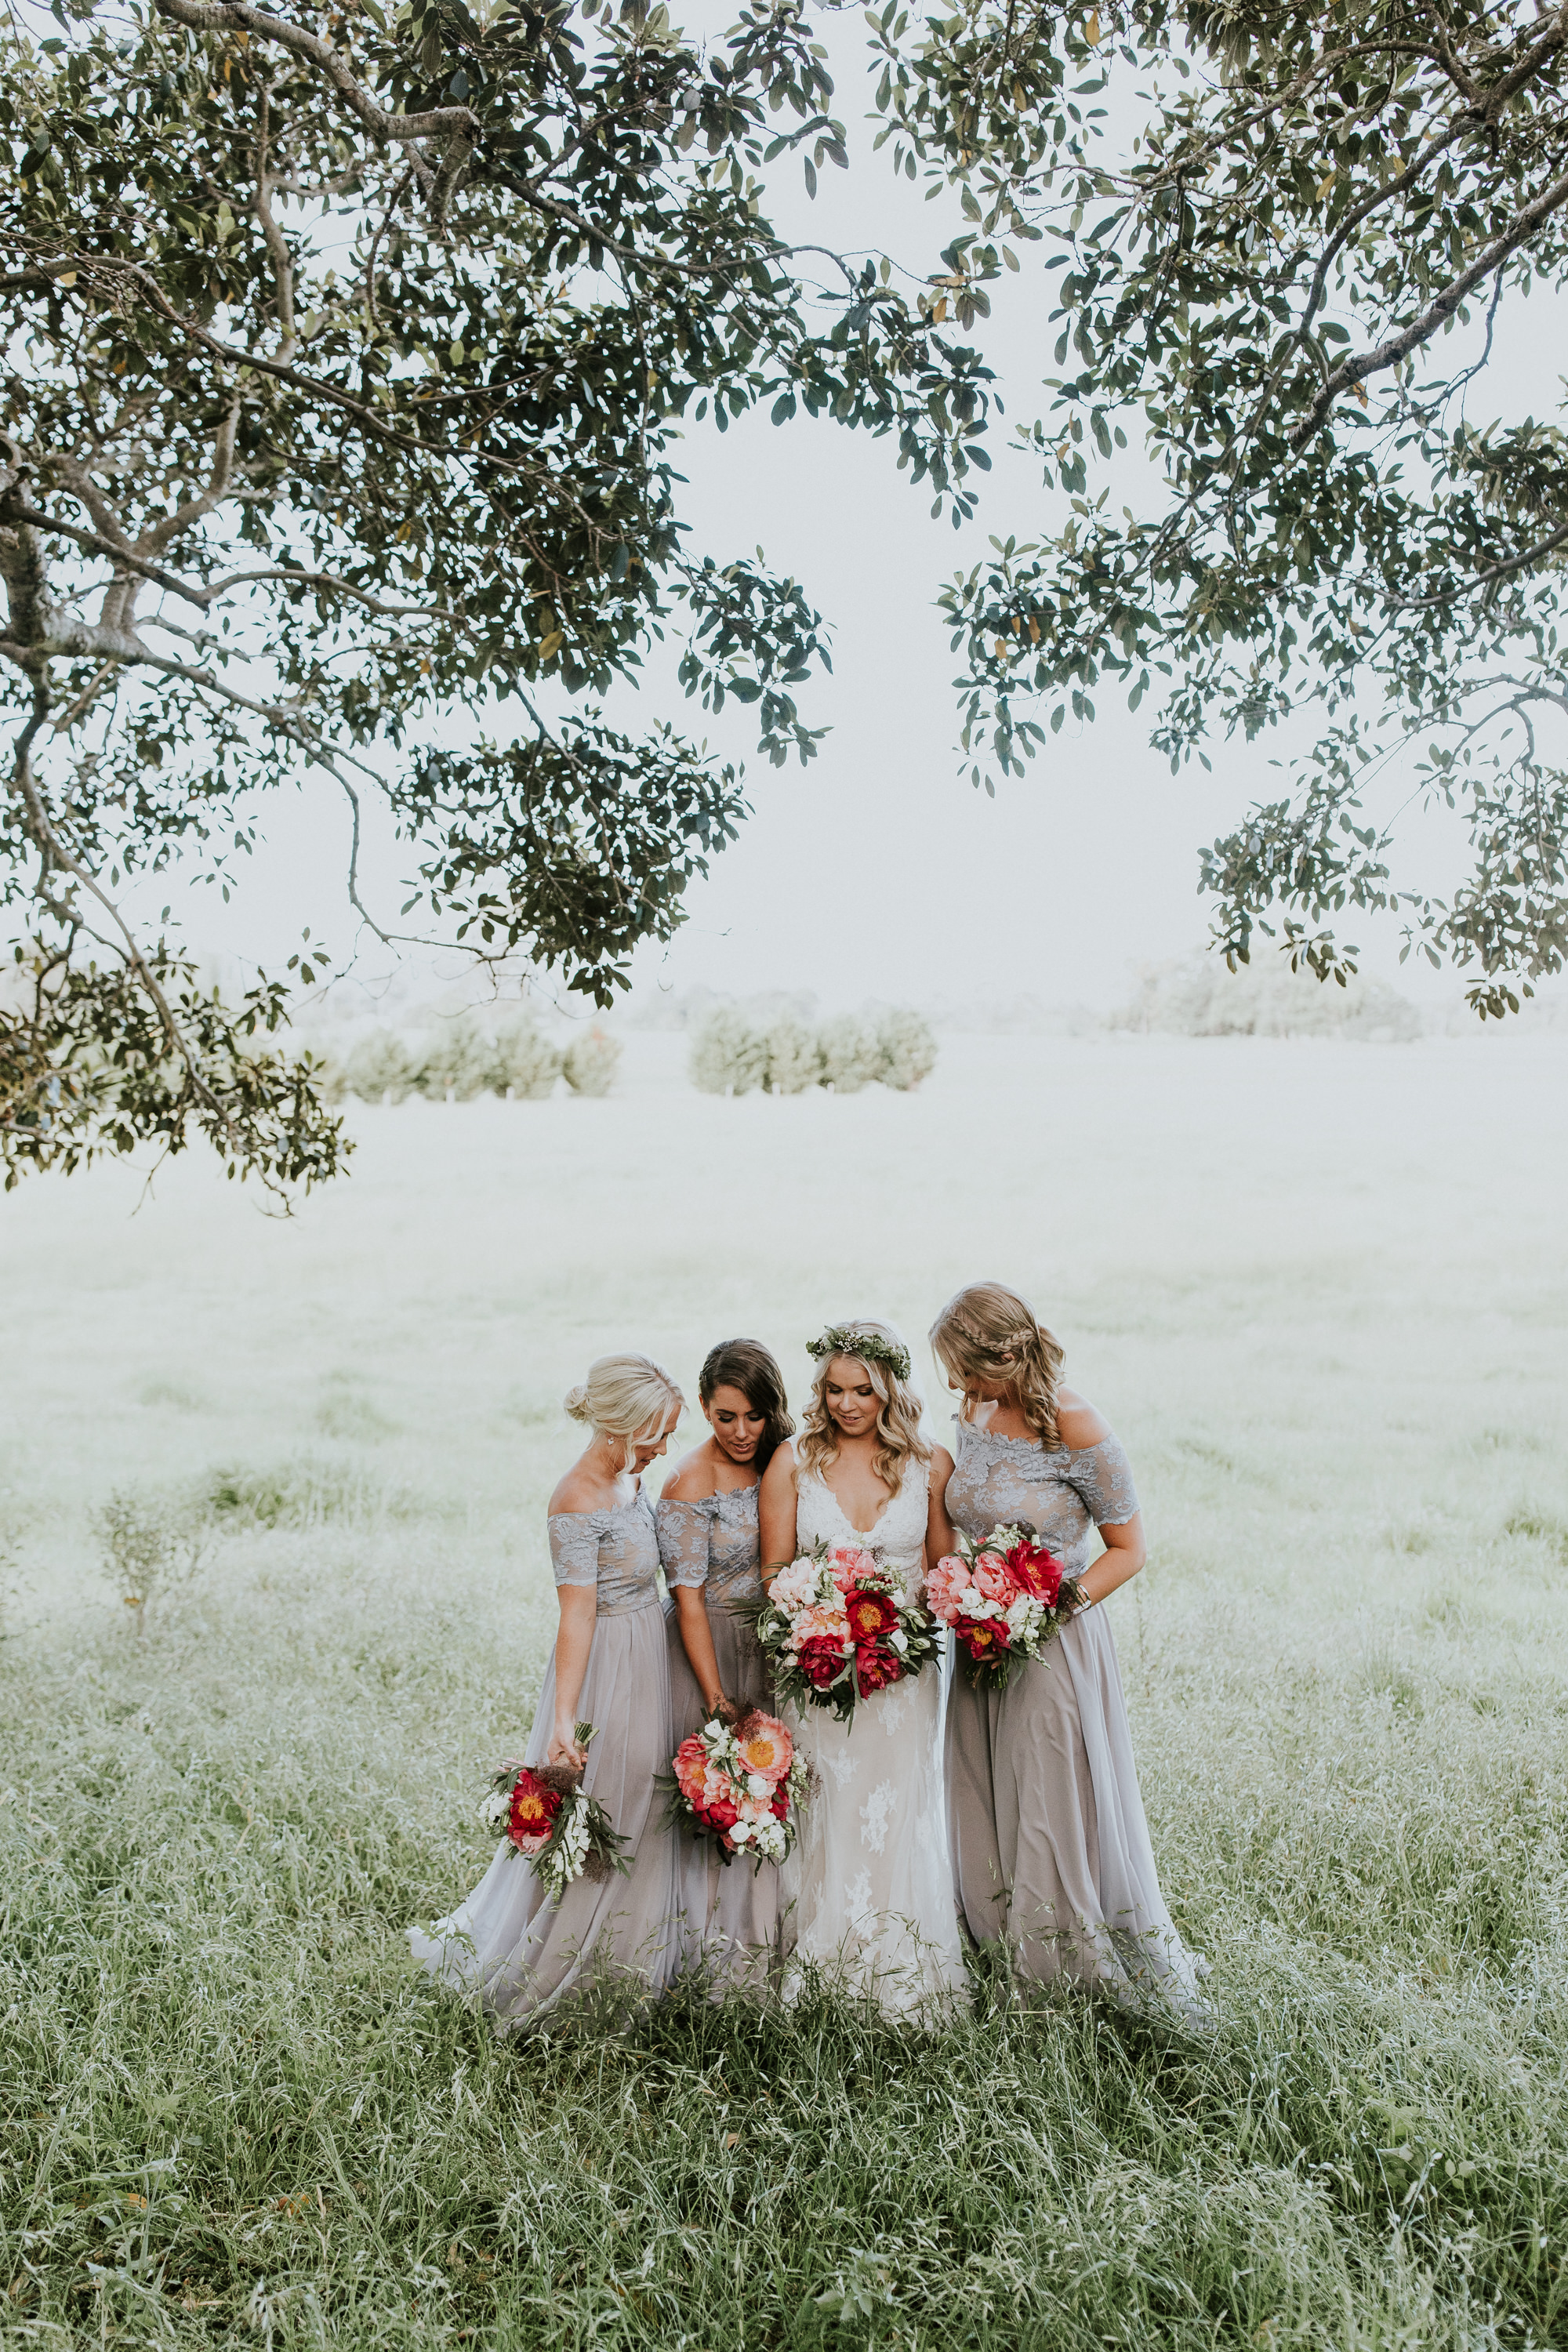 jaspers-berry-wedding-tayla-ryan-17.jpg